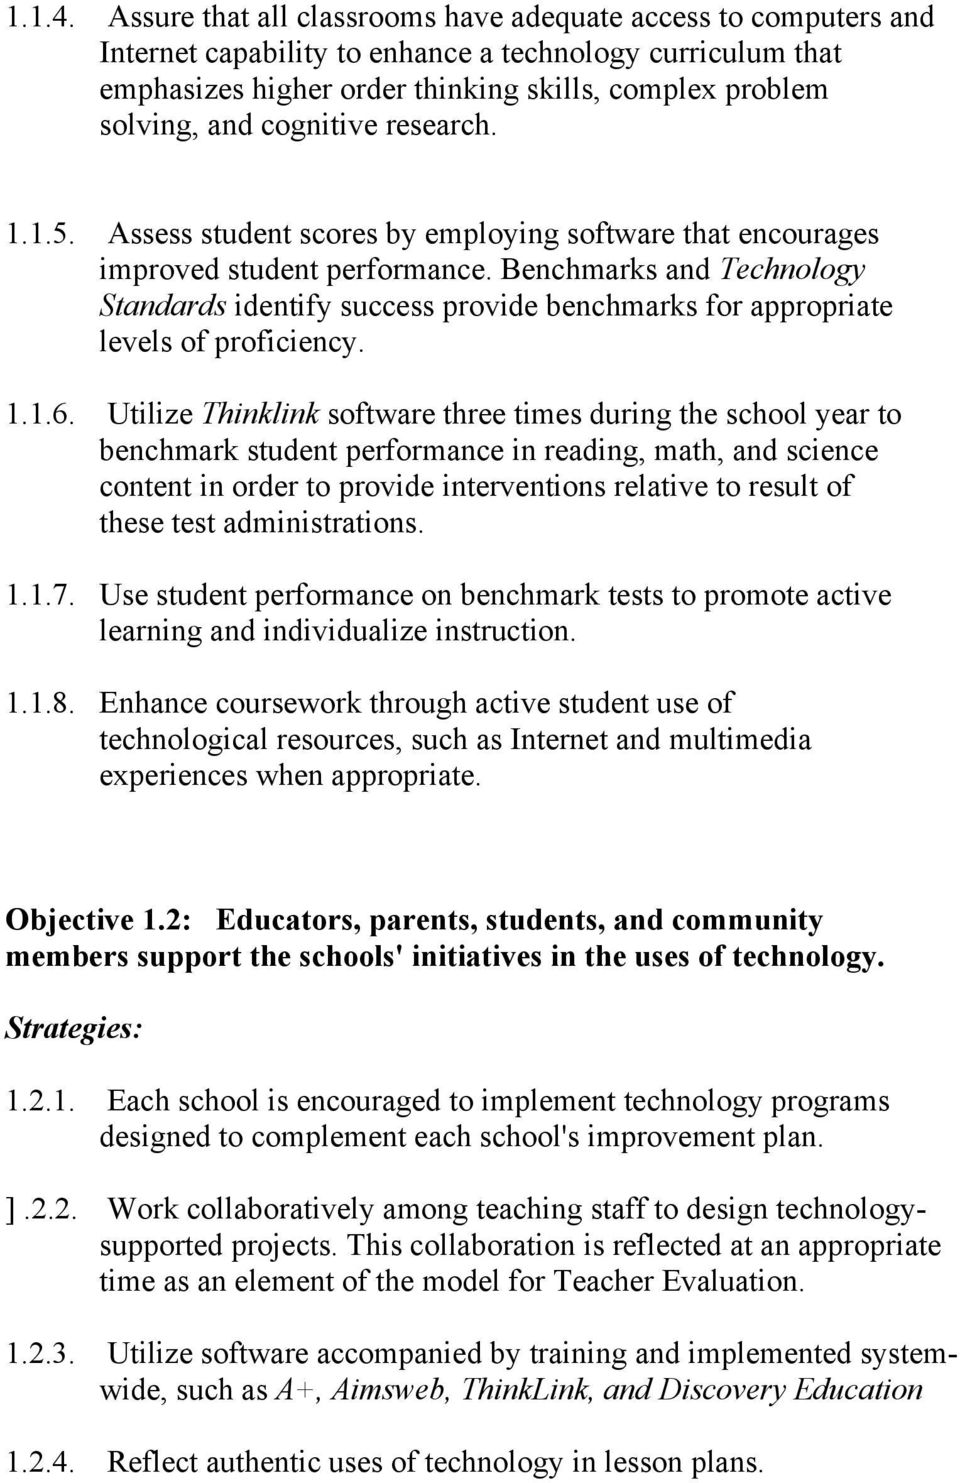 cognitive research. 1.1.5. Assess student scores by employing software that encourages improved student performance.